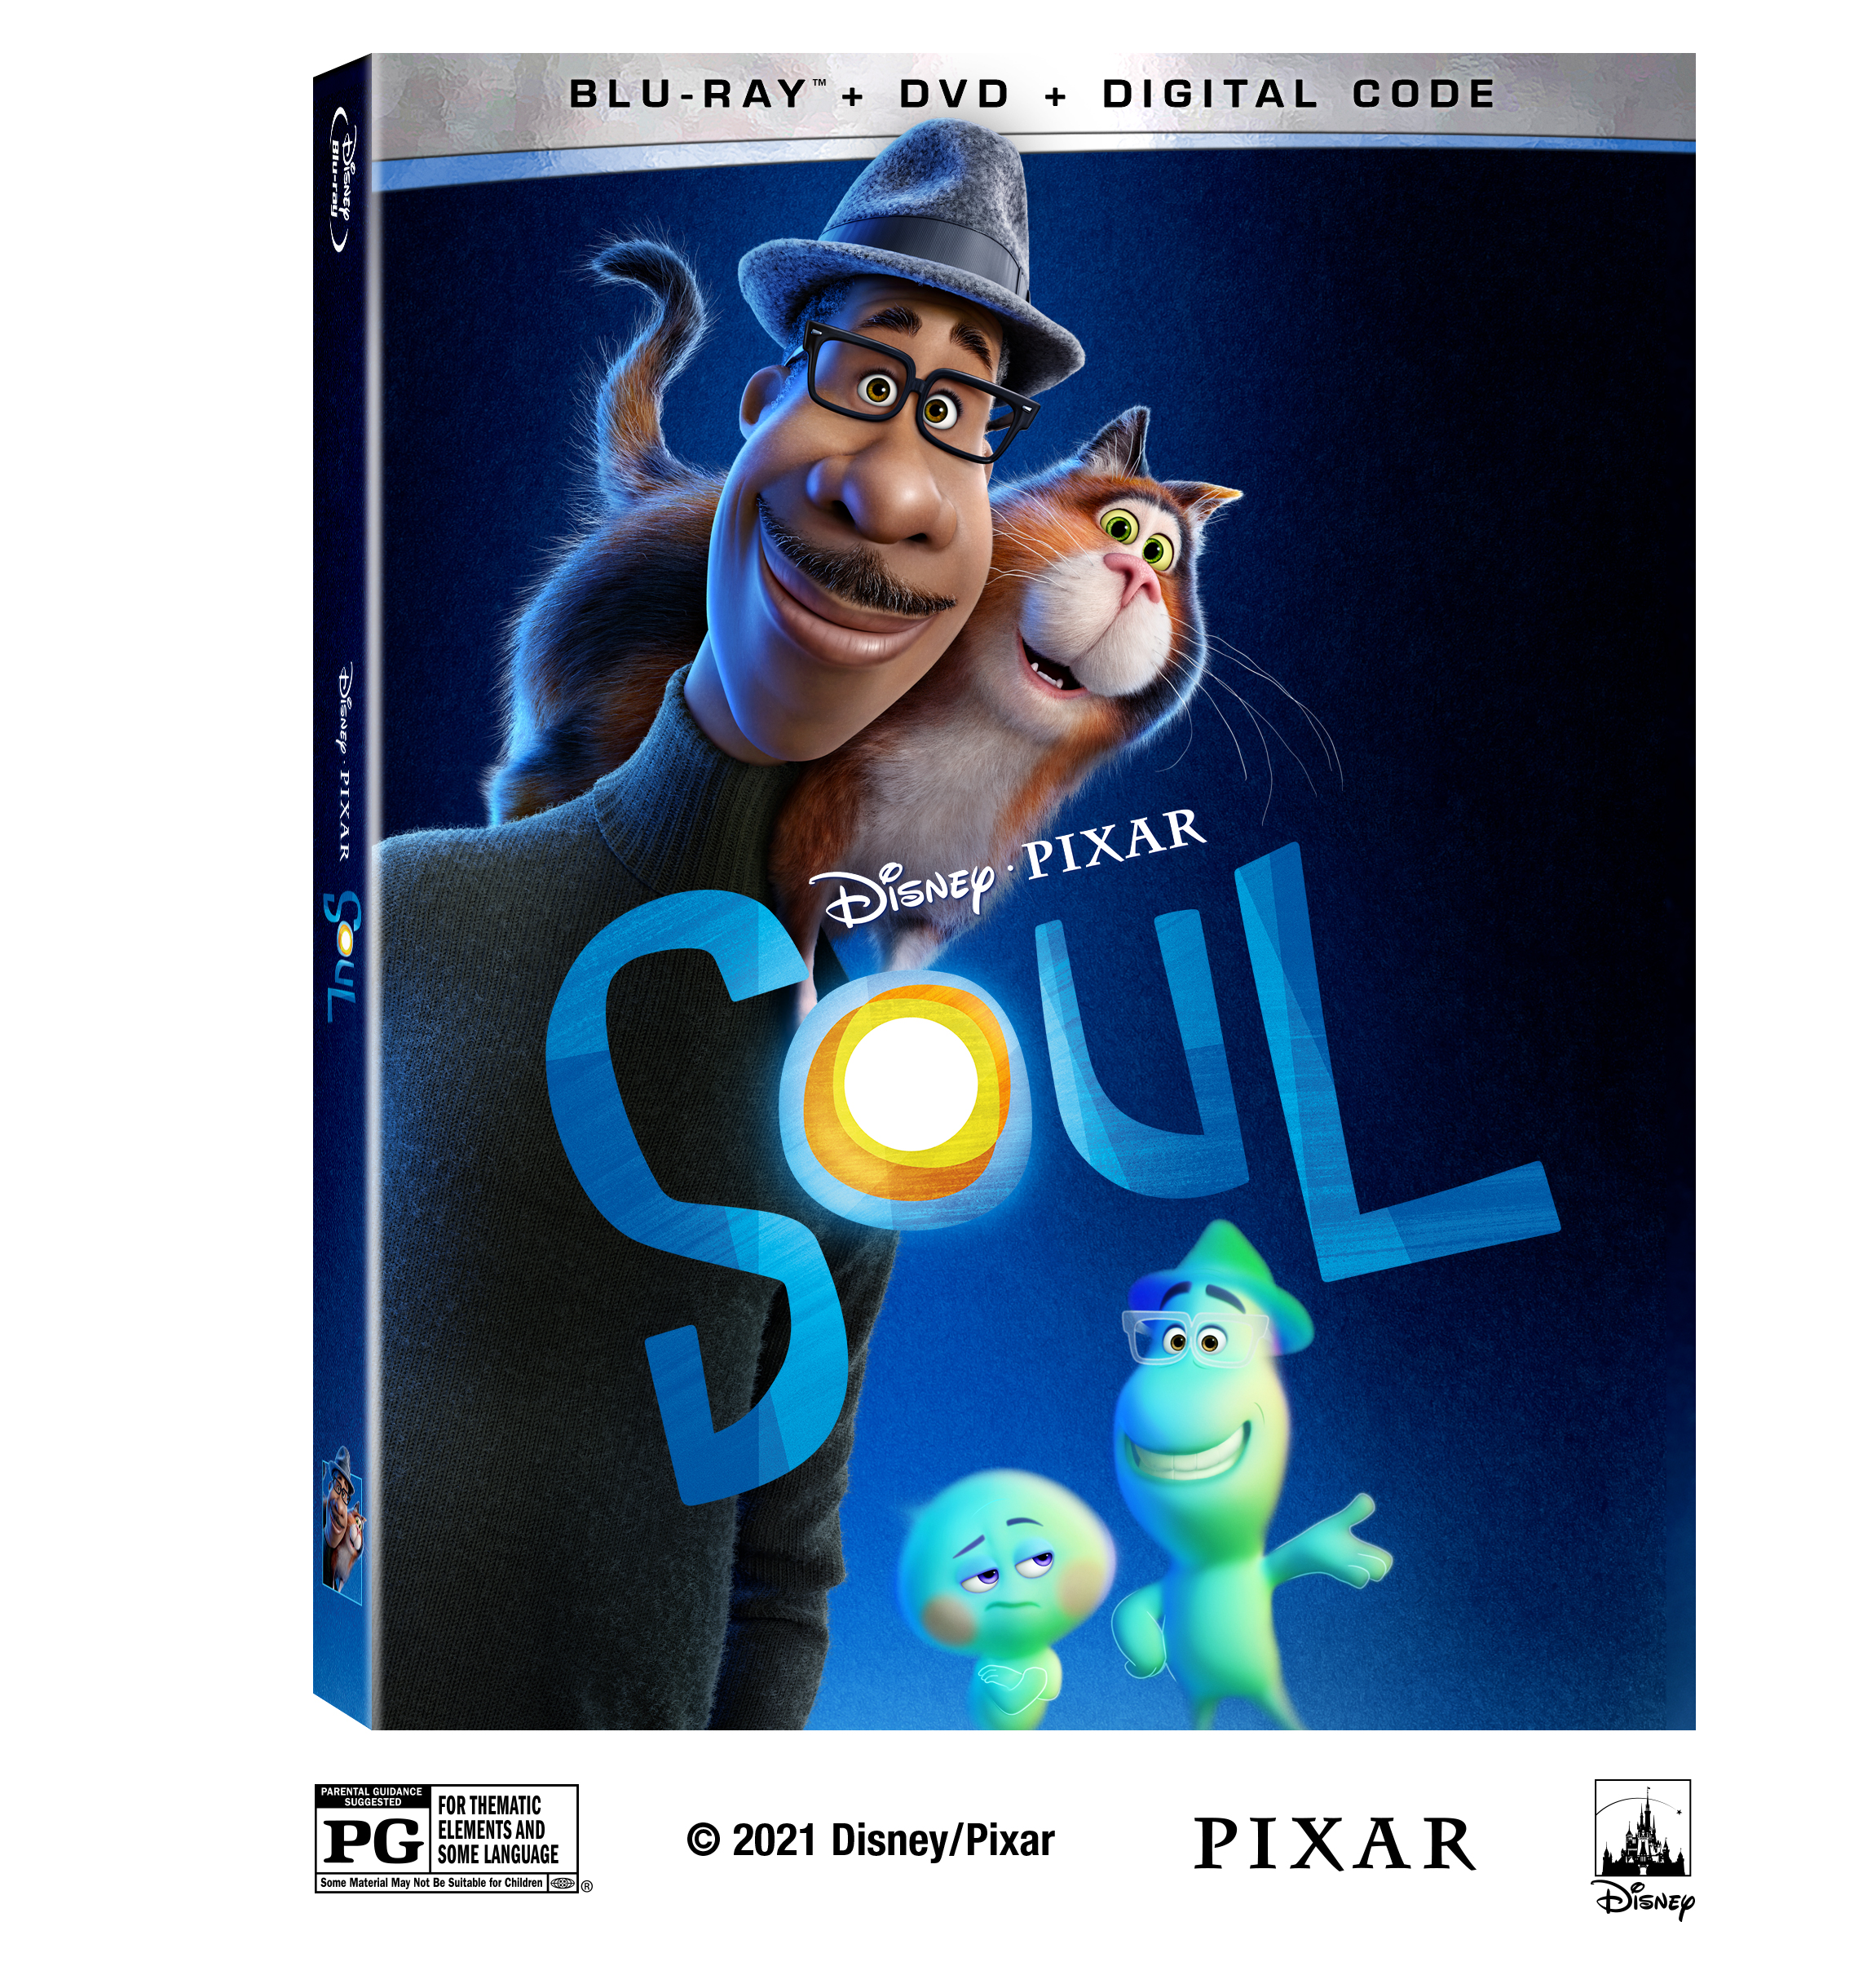 Disney and Pixar's Soul: 4K, Blu-ray, DVD & Digital Release Info